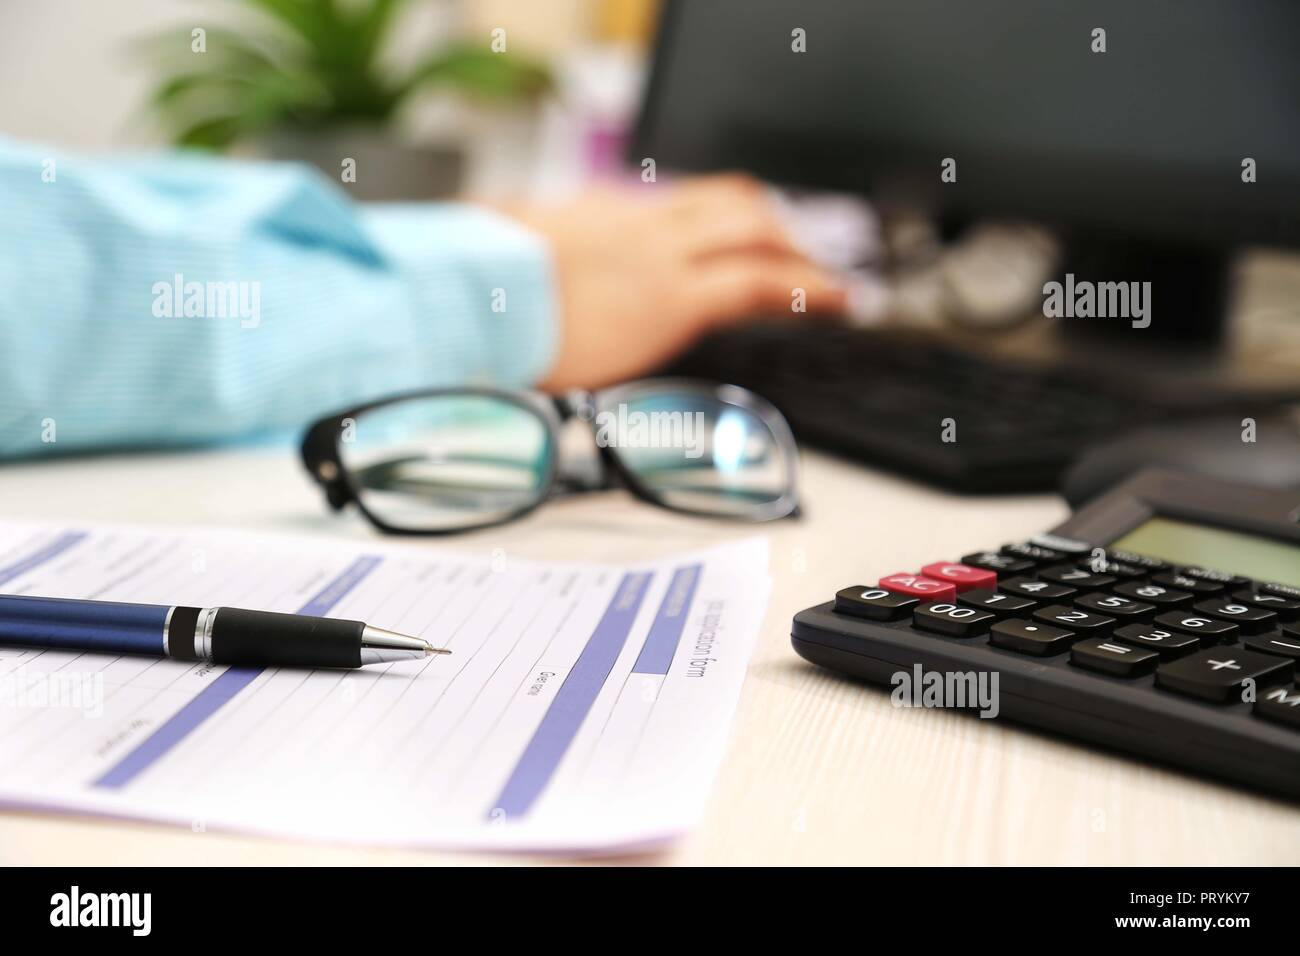 Picture of man is typing on keyboard. Picture of application form, pen, calculator and glasses. Stock Photo